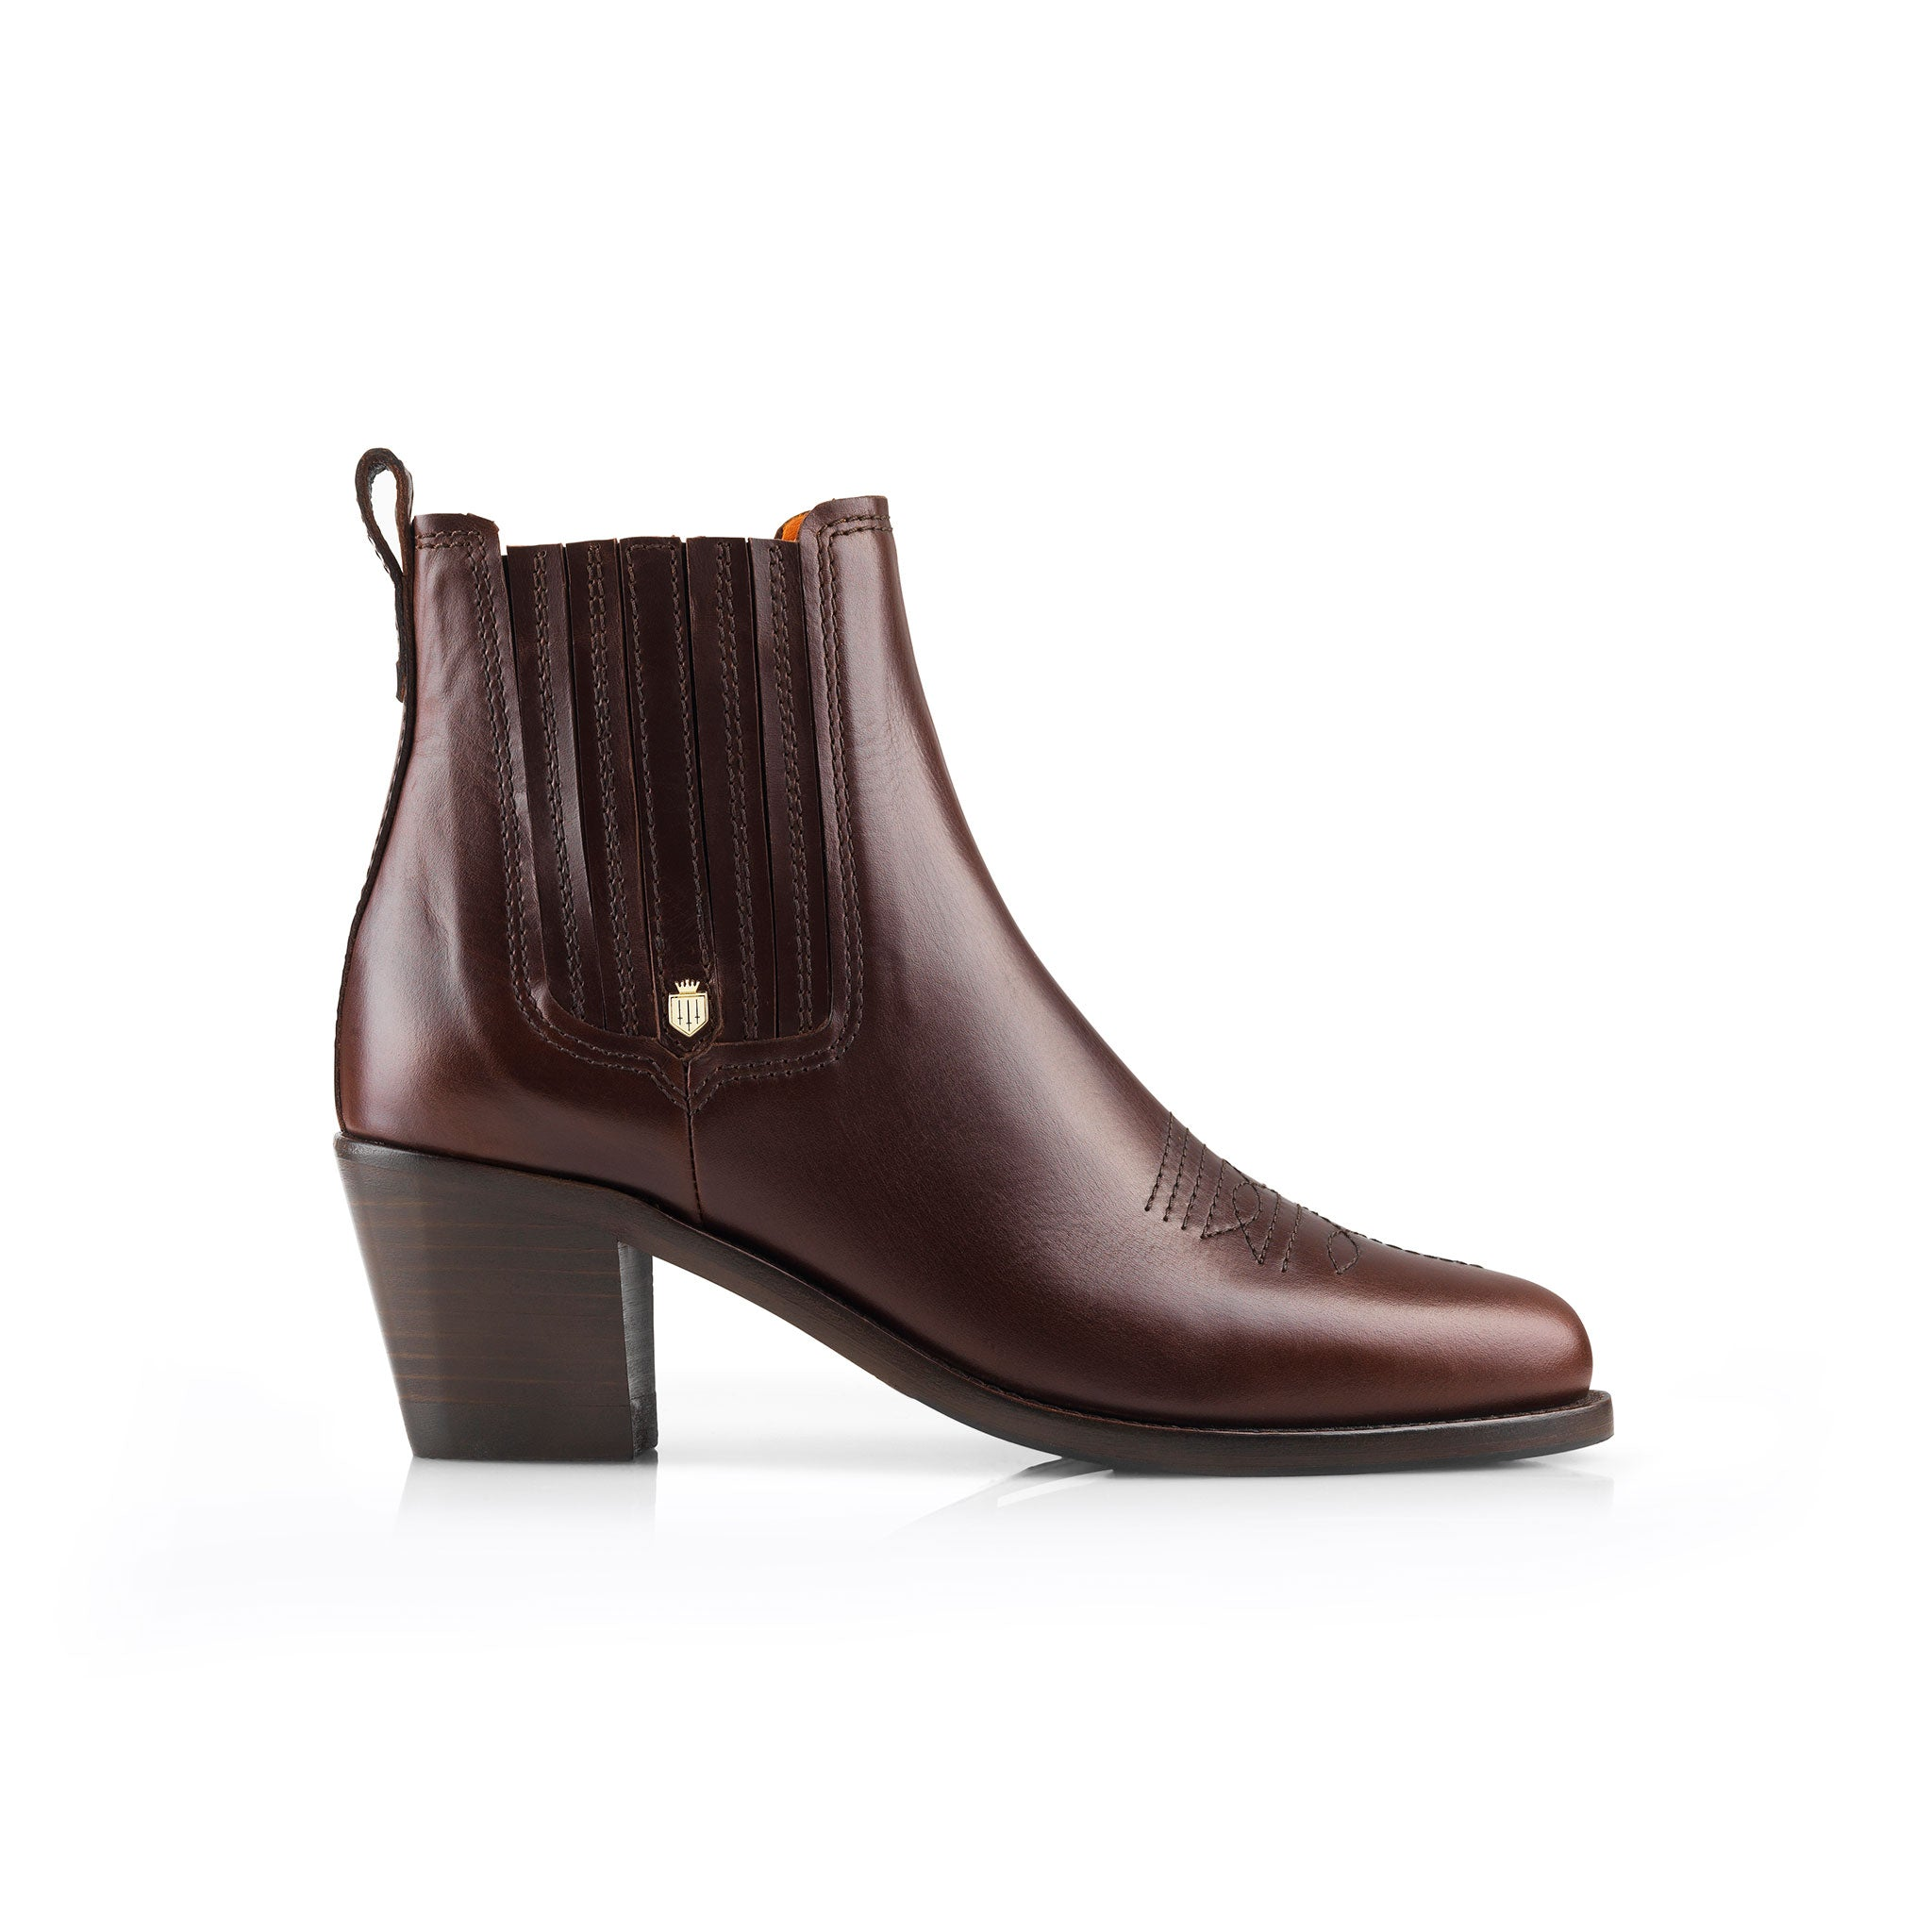 Fairfax and Favor Rockingham Ankle Boot for Ladies in Mahogany